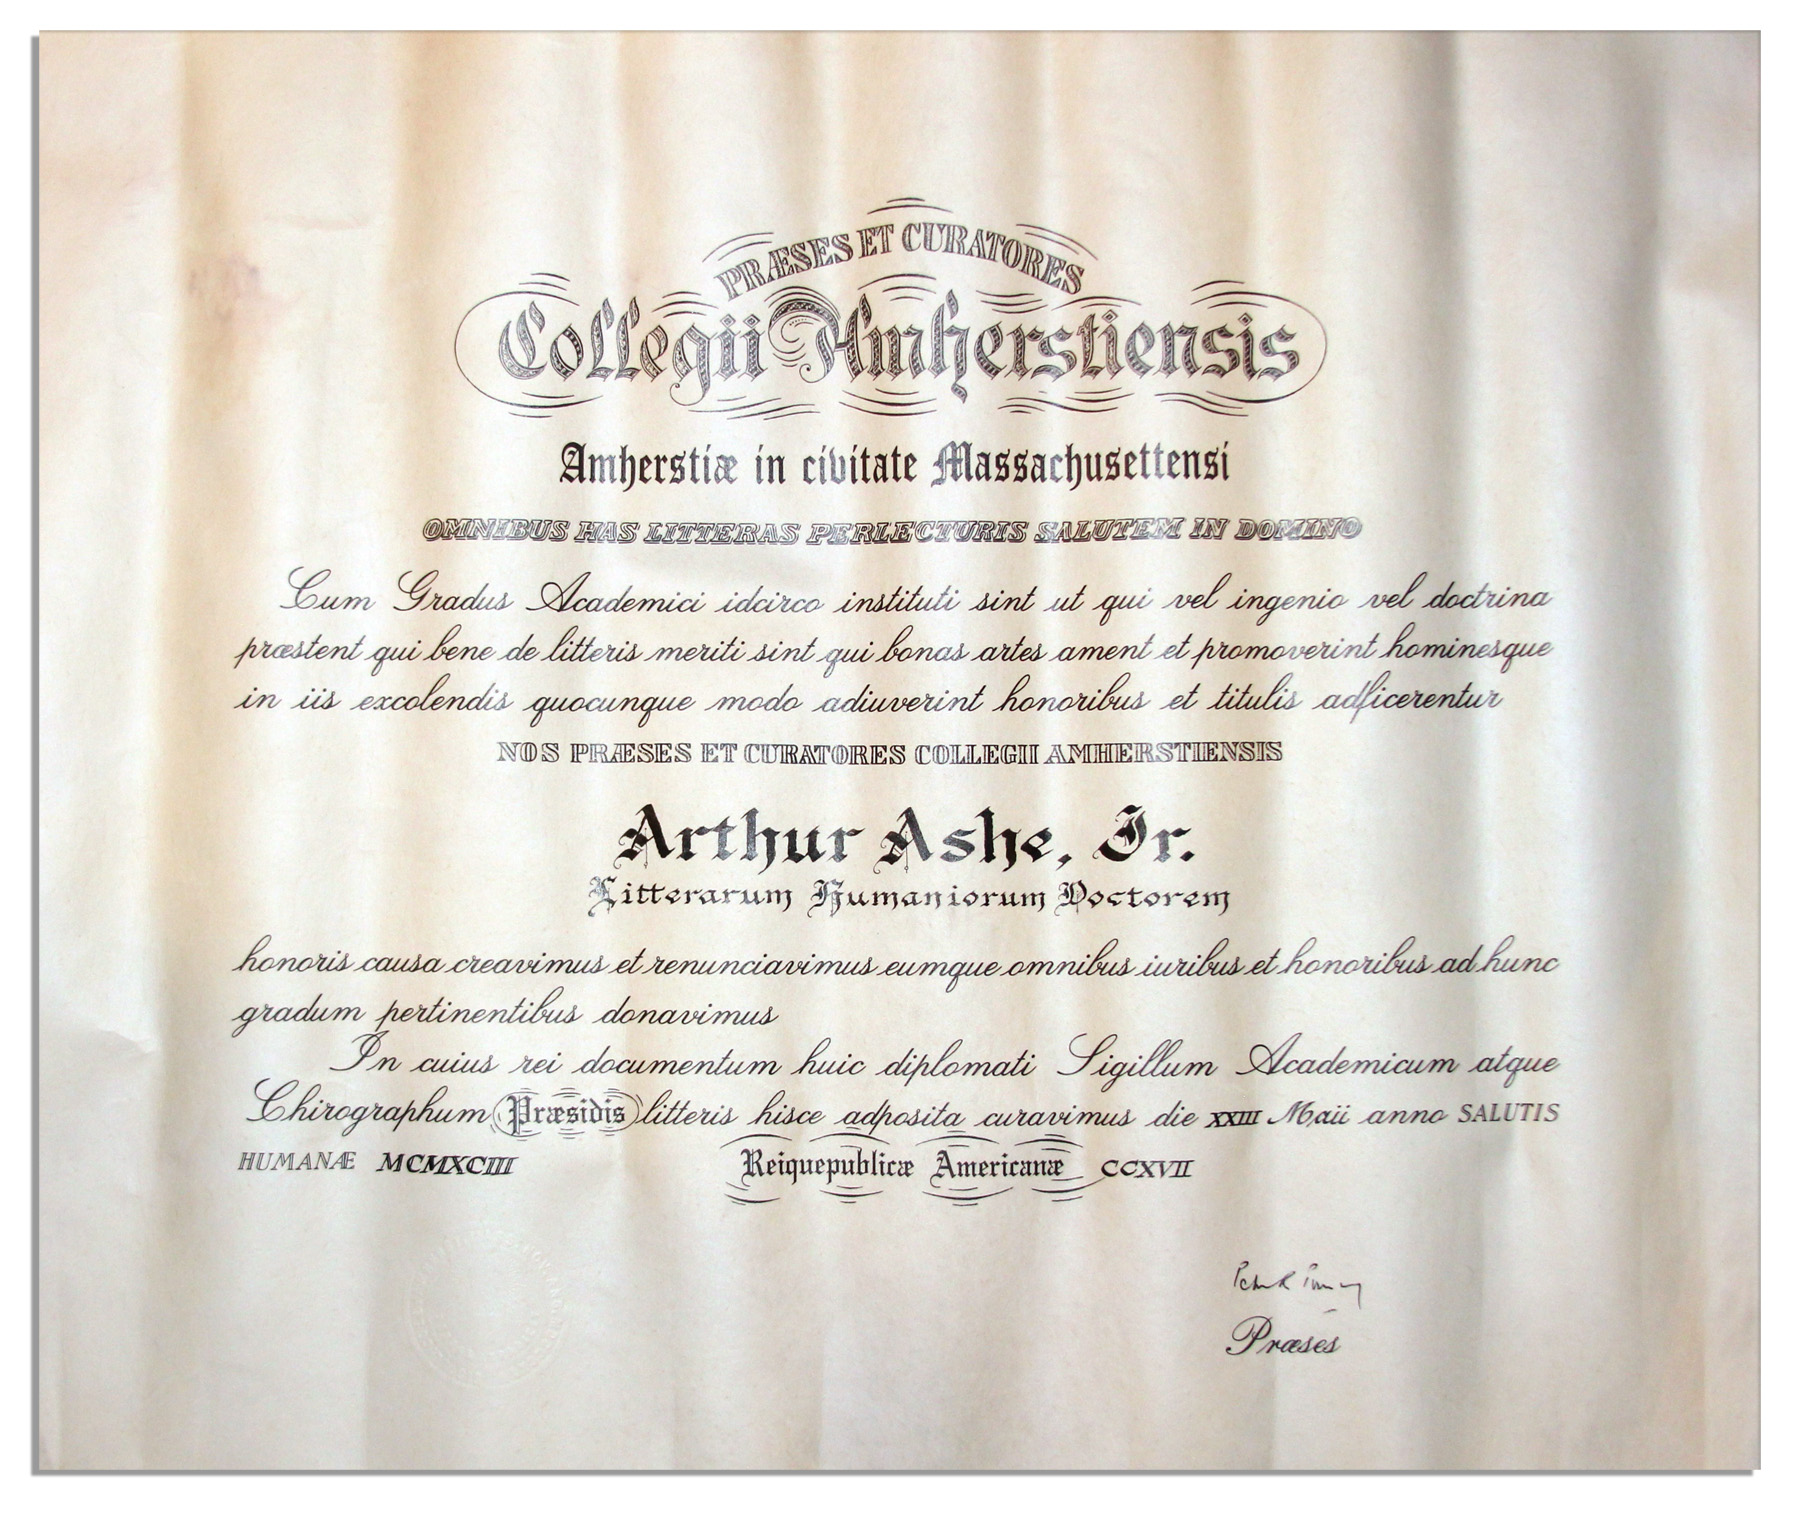 lot detail amherst college degree awarded to arthur ashe